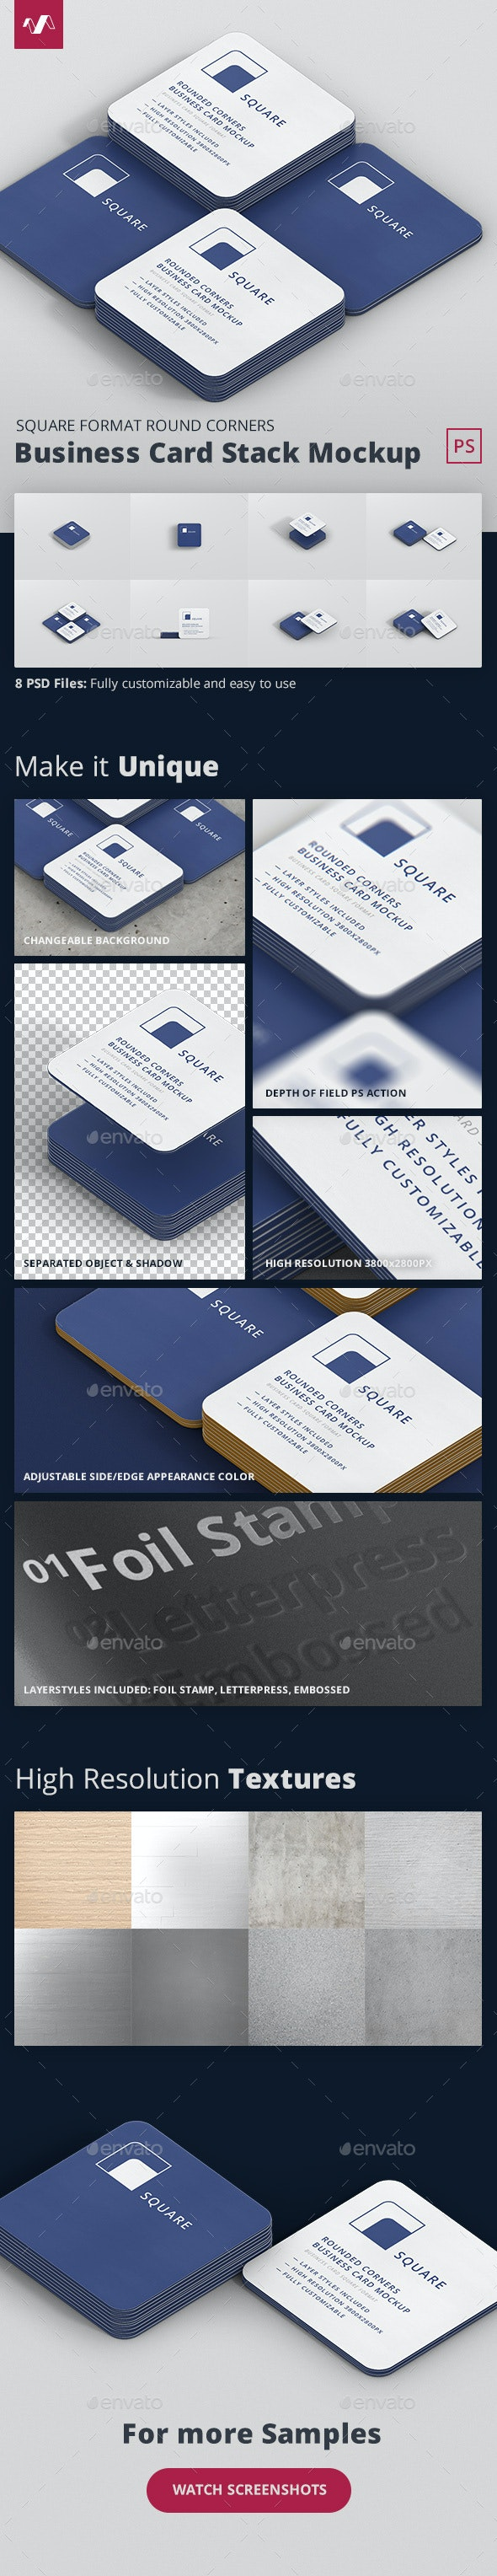 Business Card Mockup Stack Square Round Corners - Business Cards Print